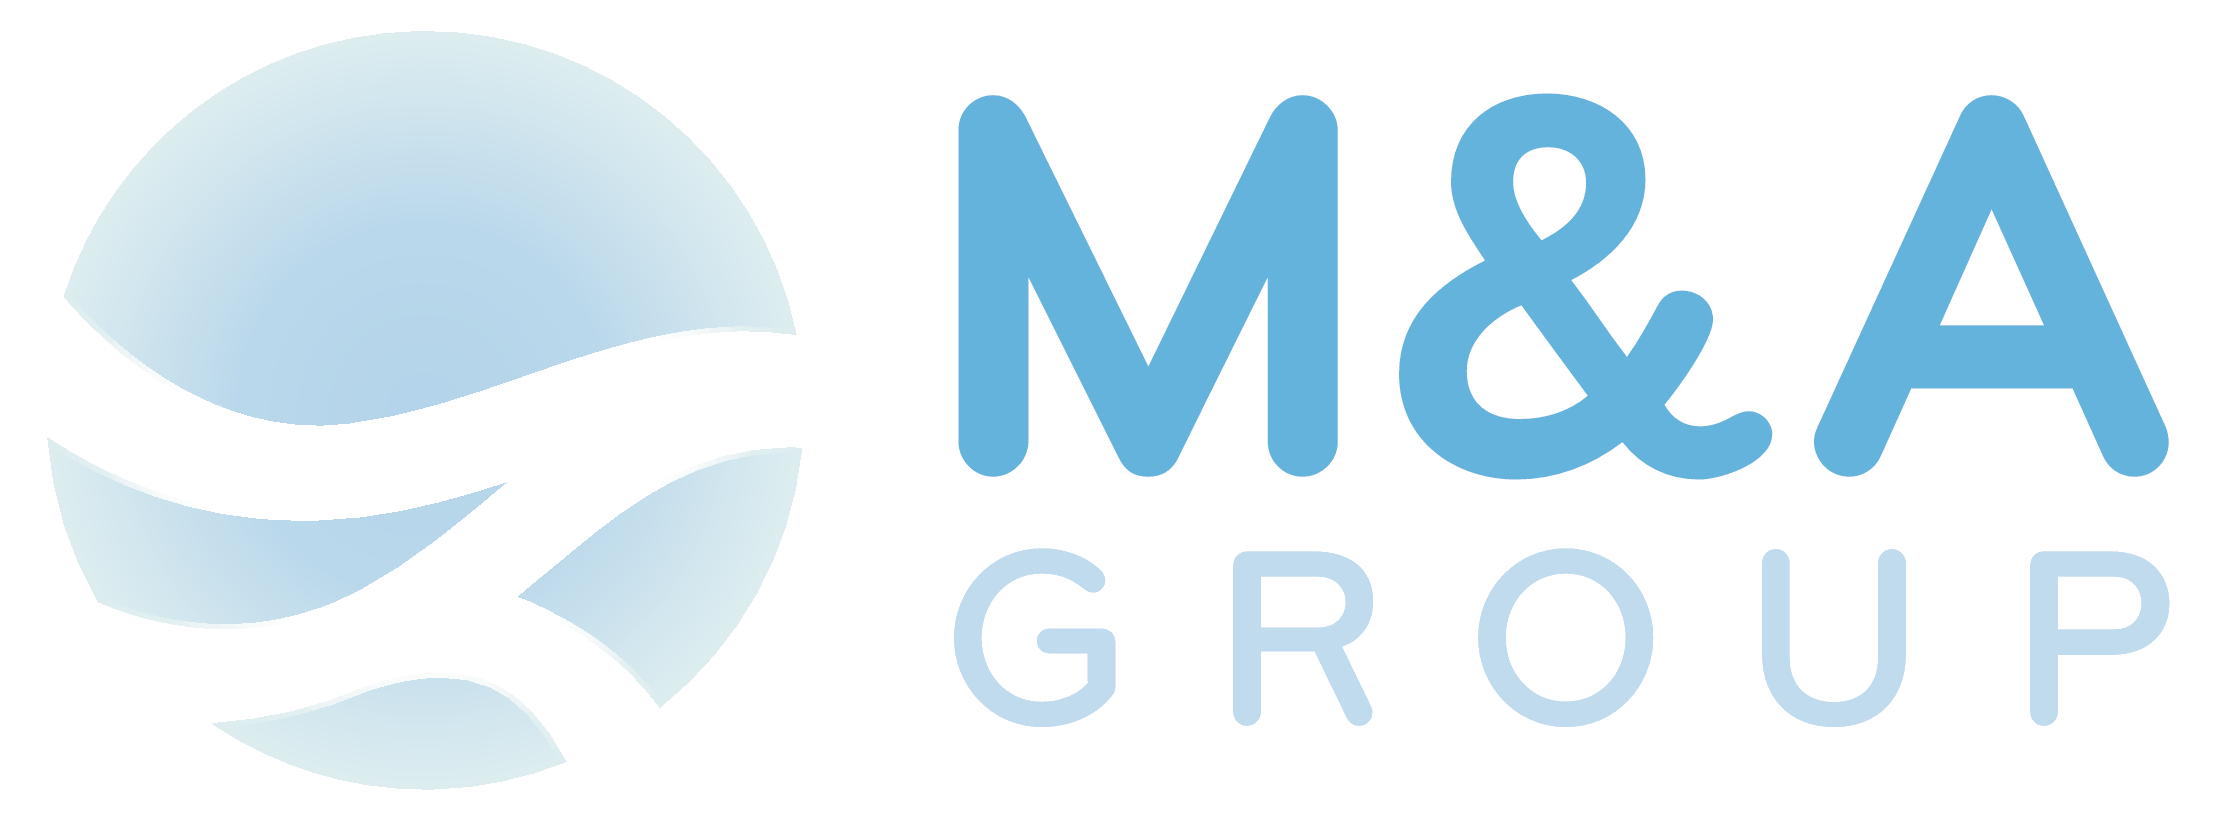 M&A Group